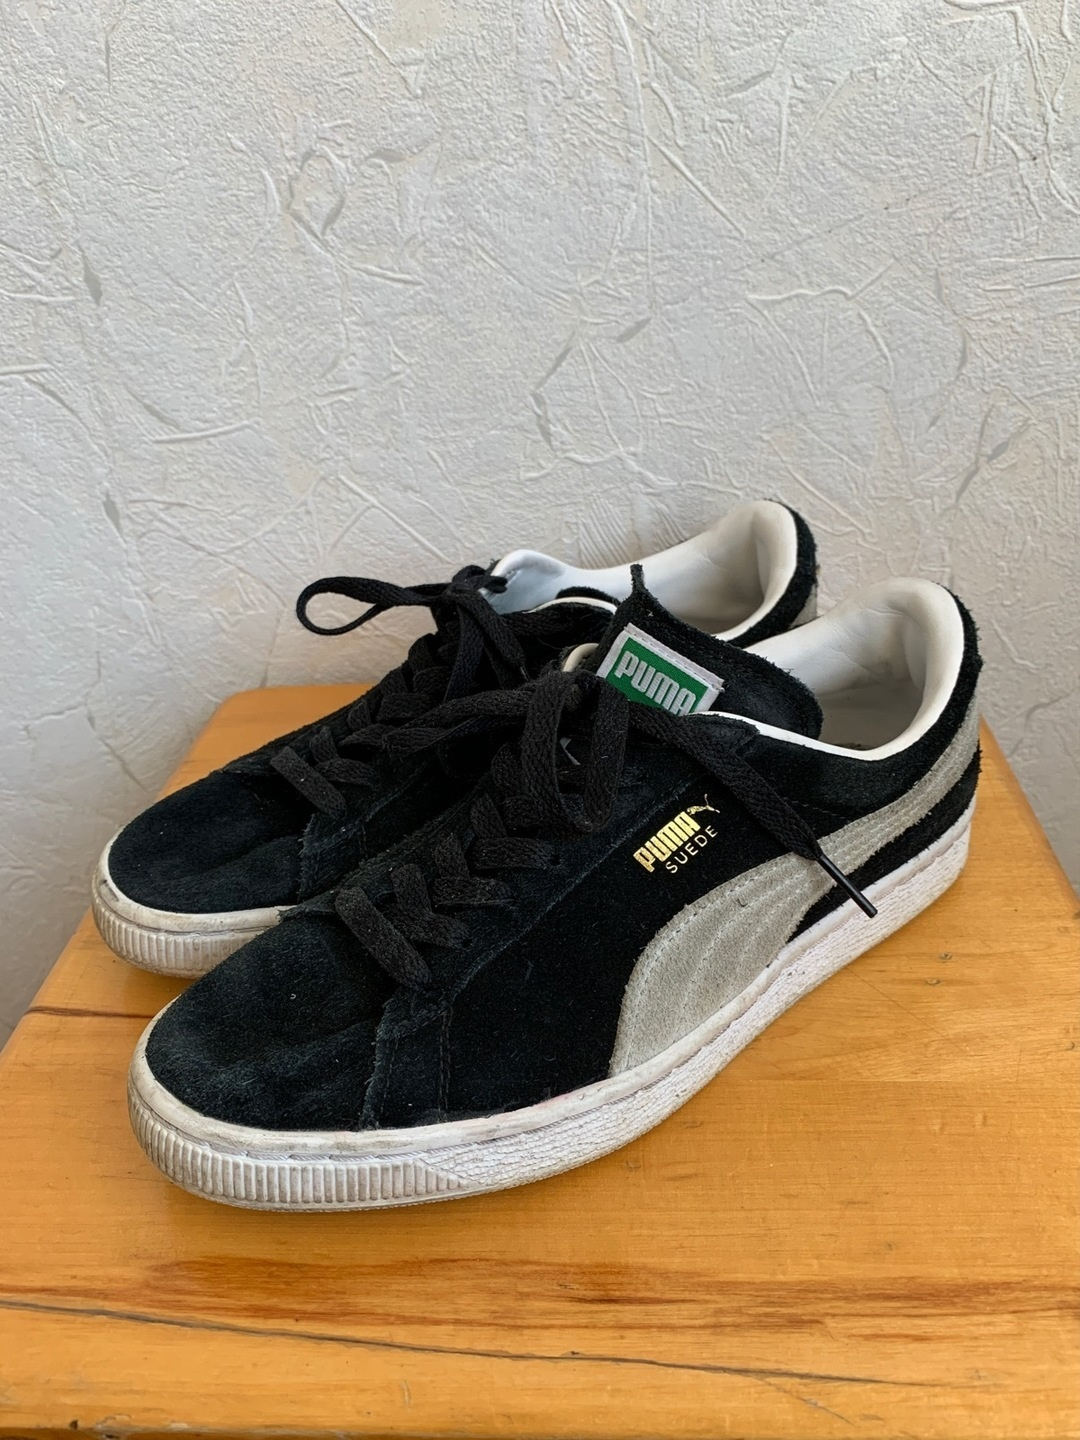 Women's sneakers - PUMA photo 1